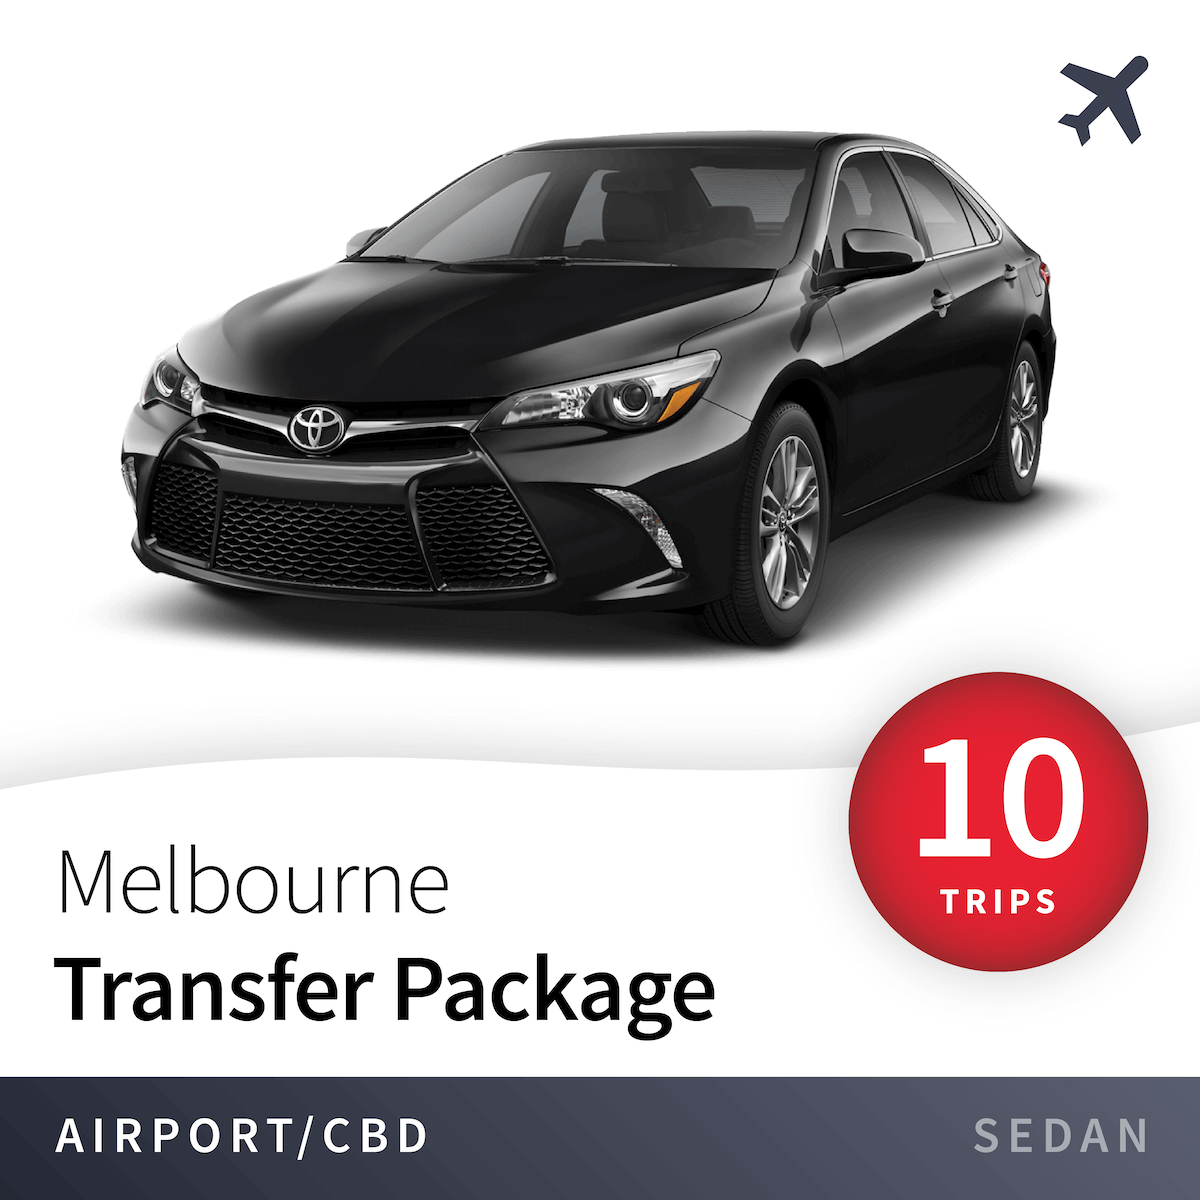 Melbourne Airport Transfer Package - Sedan (10 Trips) 1